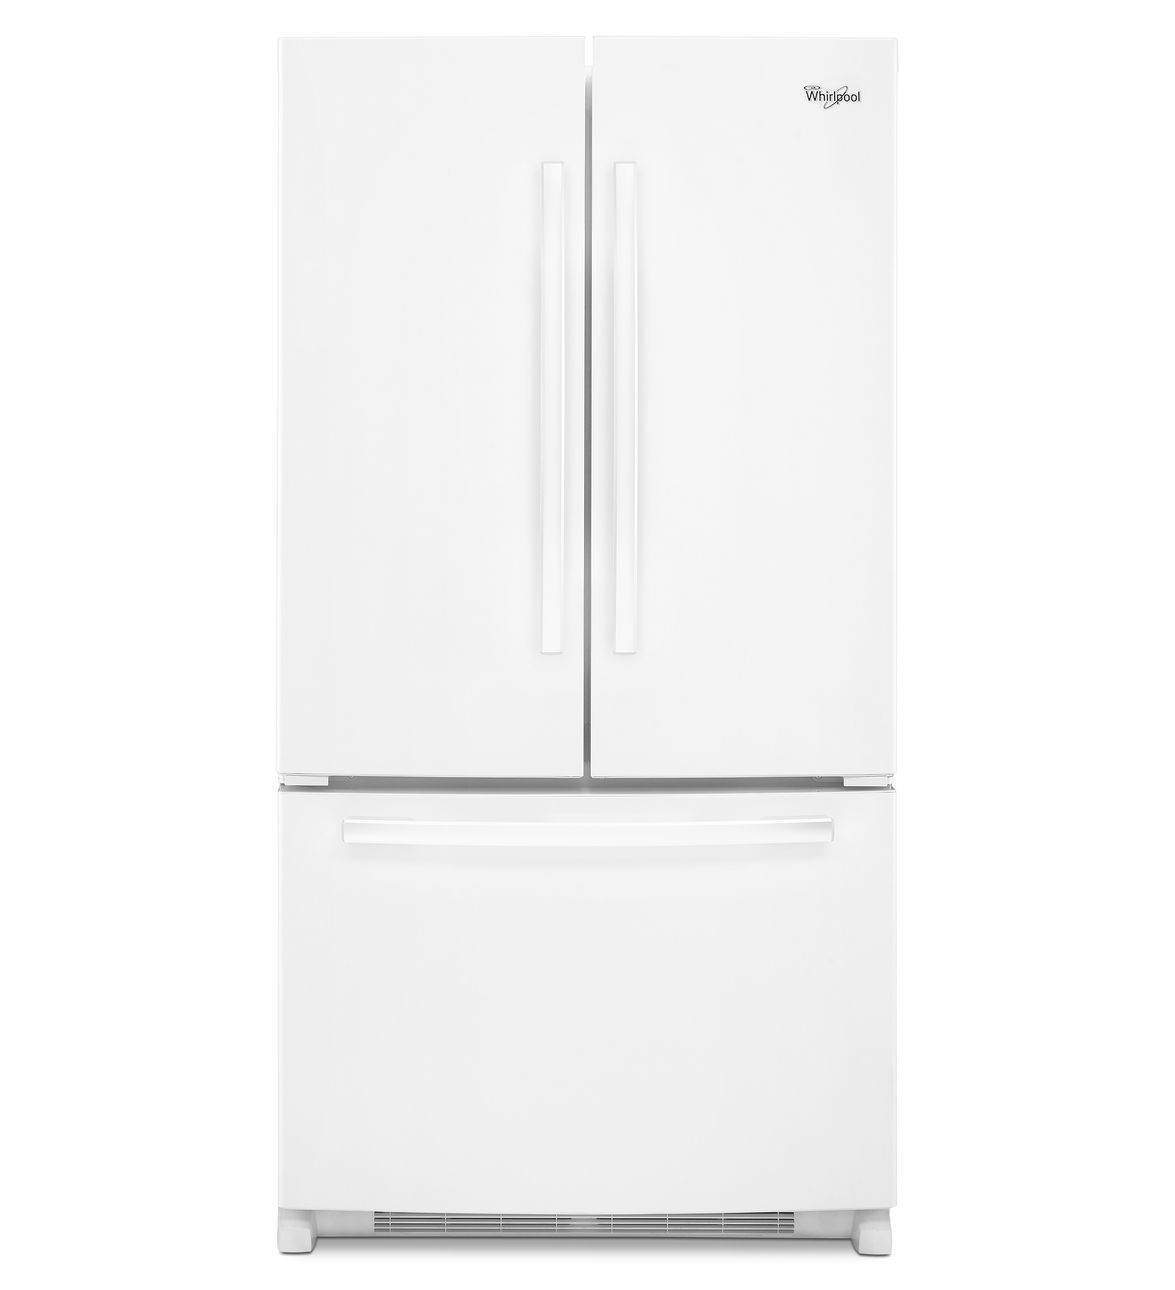 36 Inch Wide Counter Depth French Door Refrigerator With  Temperature Controlled Full Width